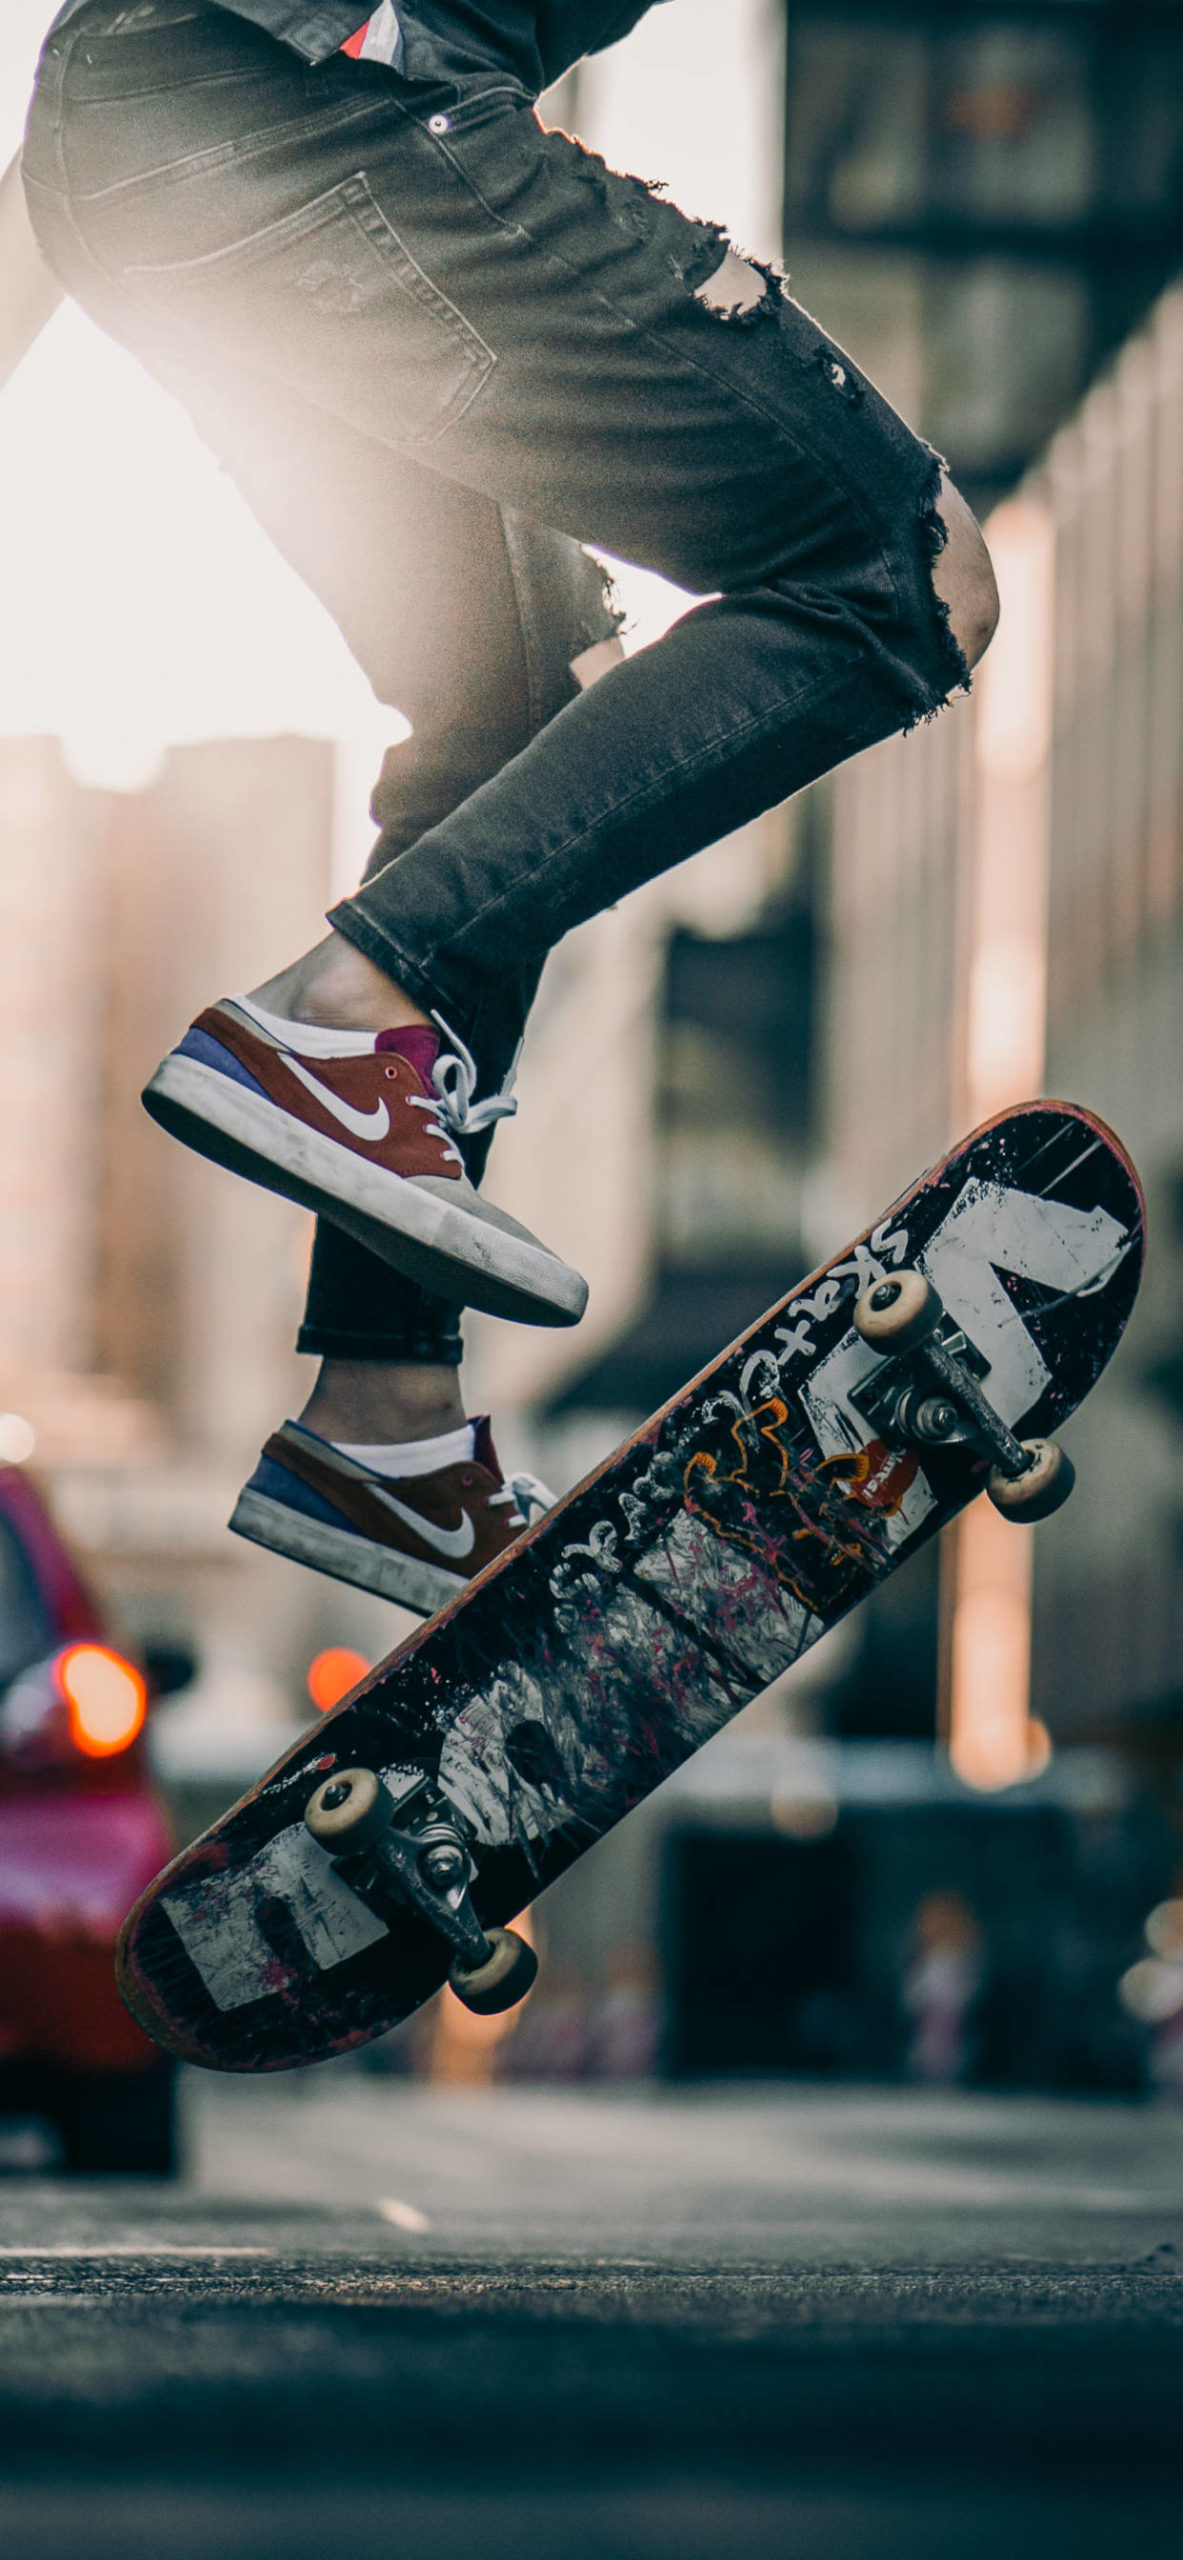 iPhone wallpapers skate street scaled Skateboard